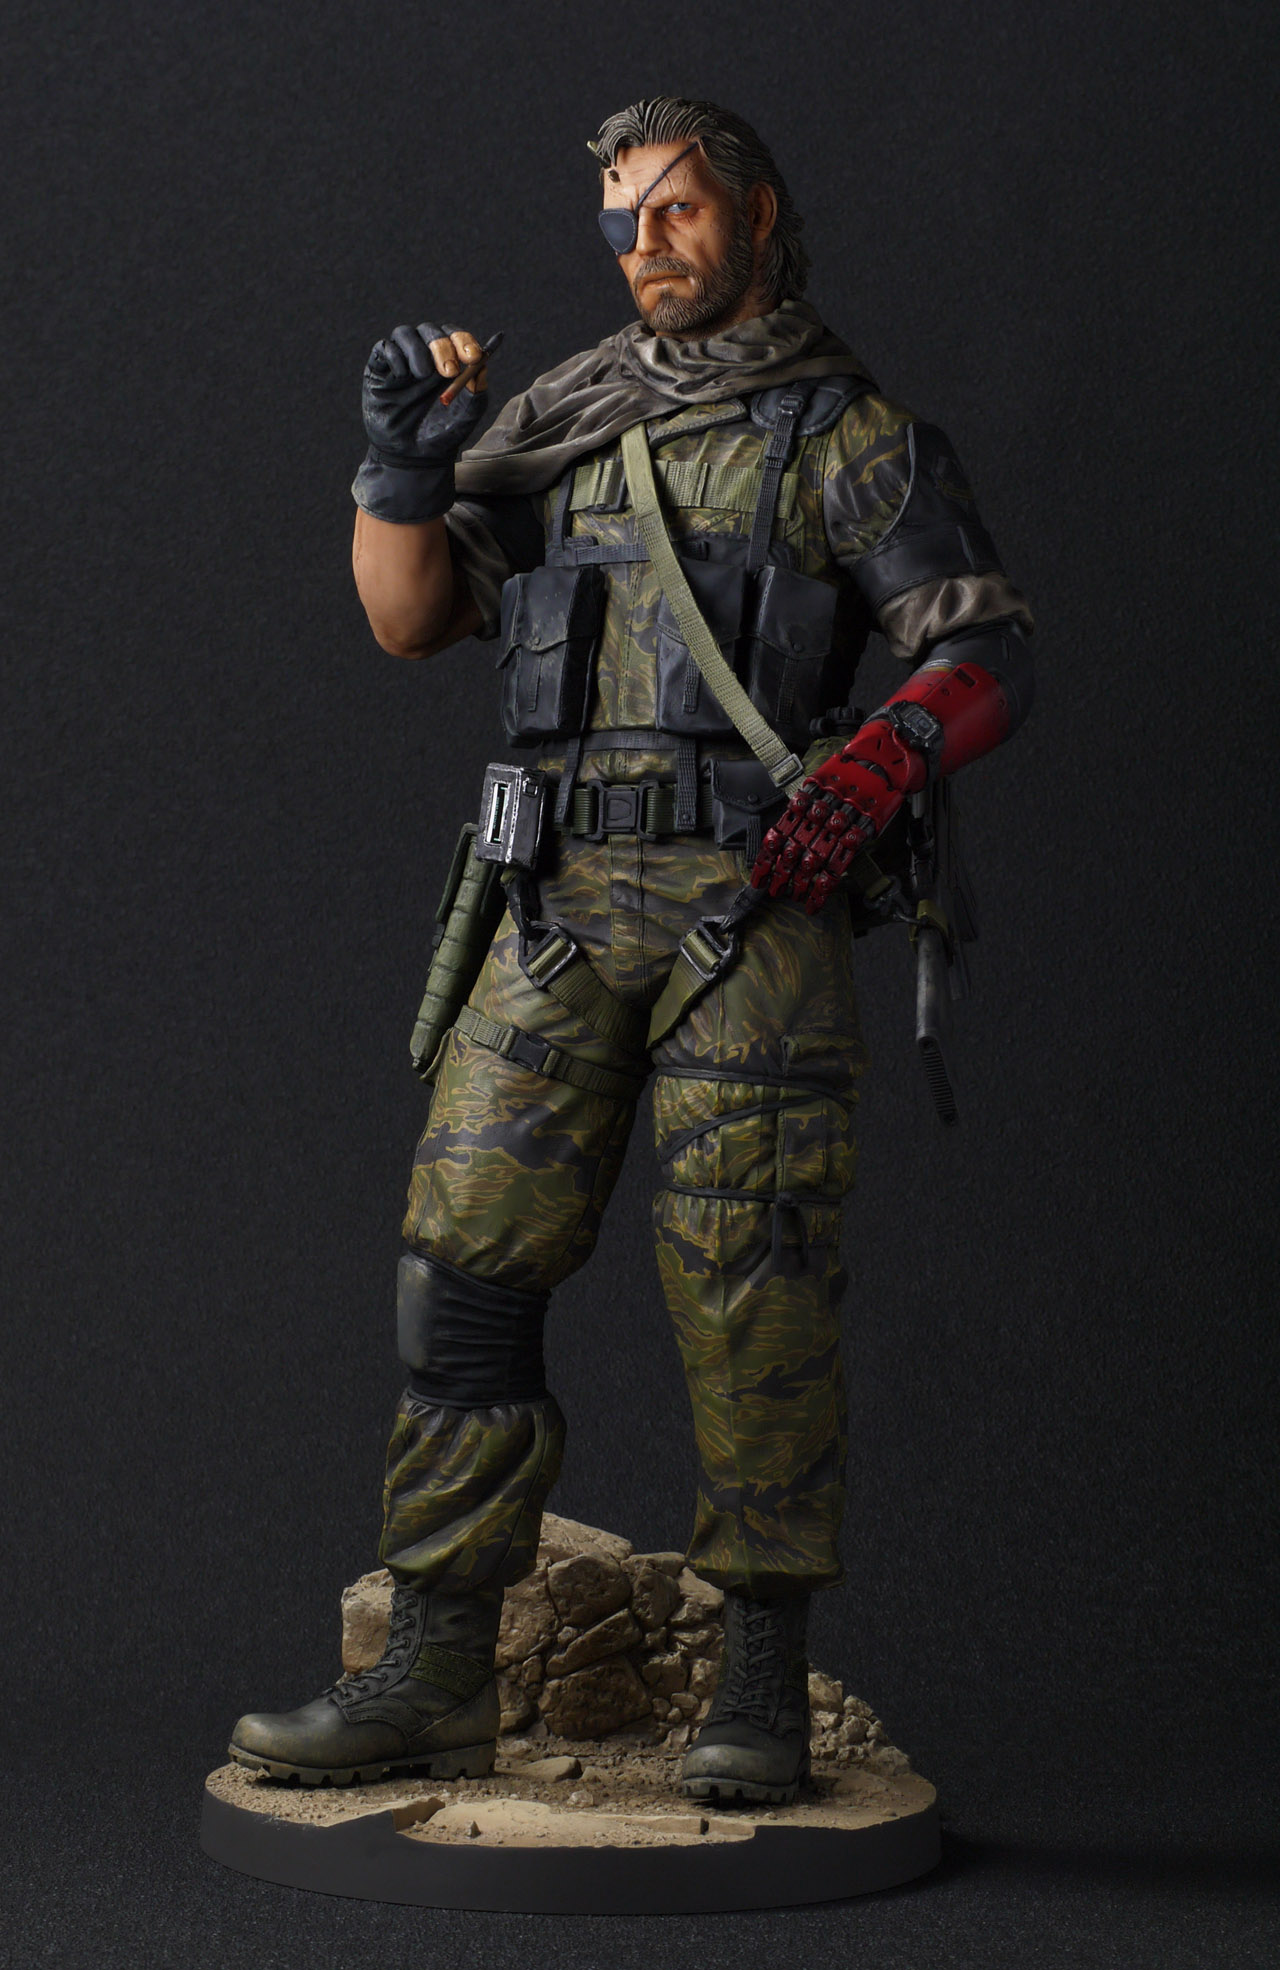 Mgsv Venom Snake Statue Toy Discussion At Toyark Com